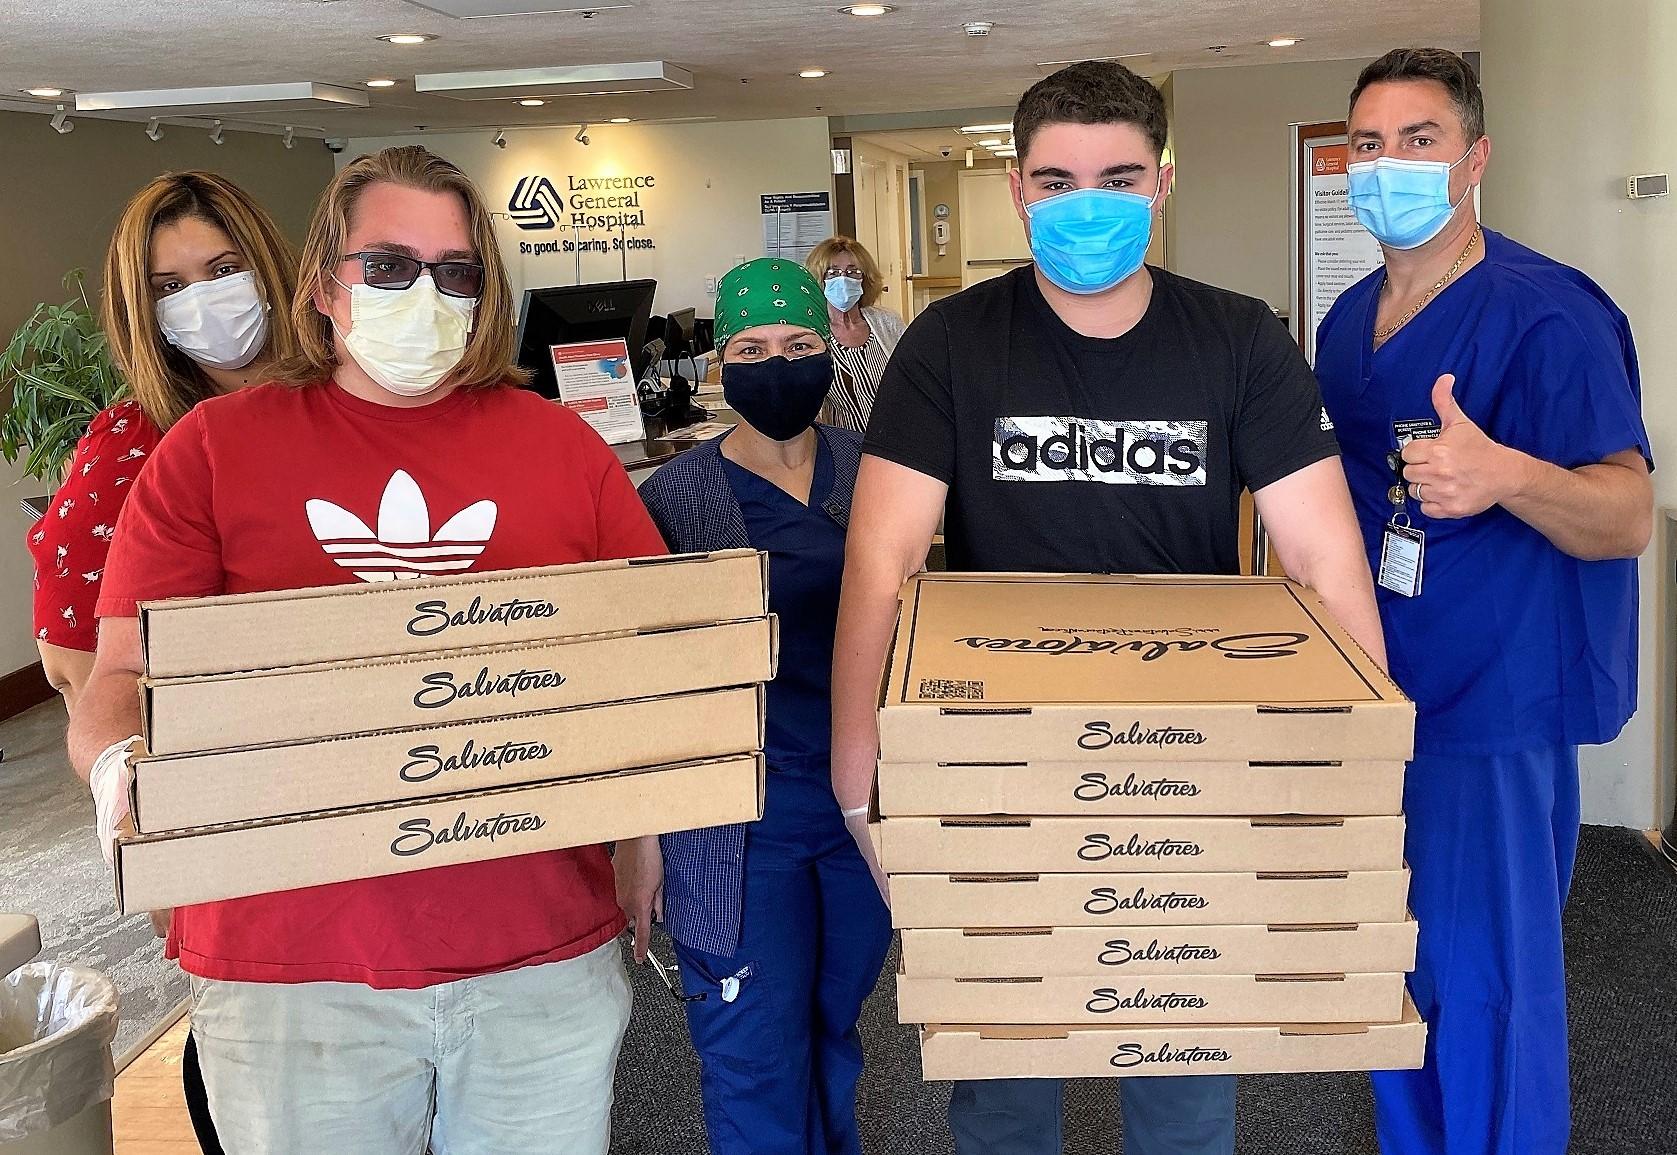 Employees from Salvatore's in Lawrence deliver 130 pizzas to staff at Lawrence General Hospital as part of Merrimack Valley Credit Union's 'Feed the Frontline' program.